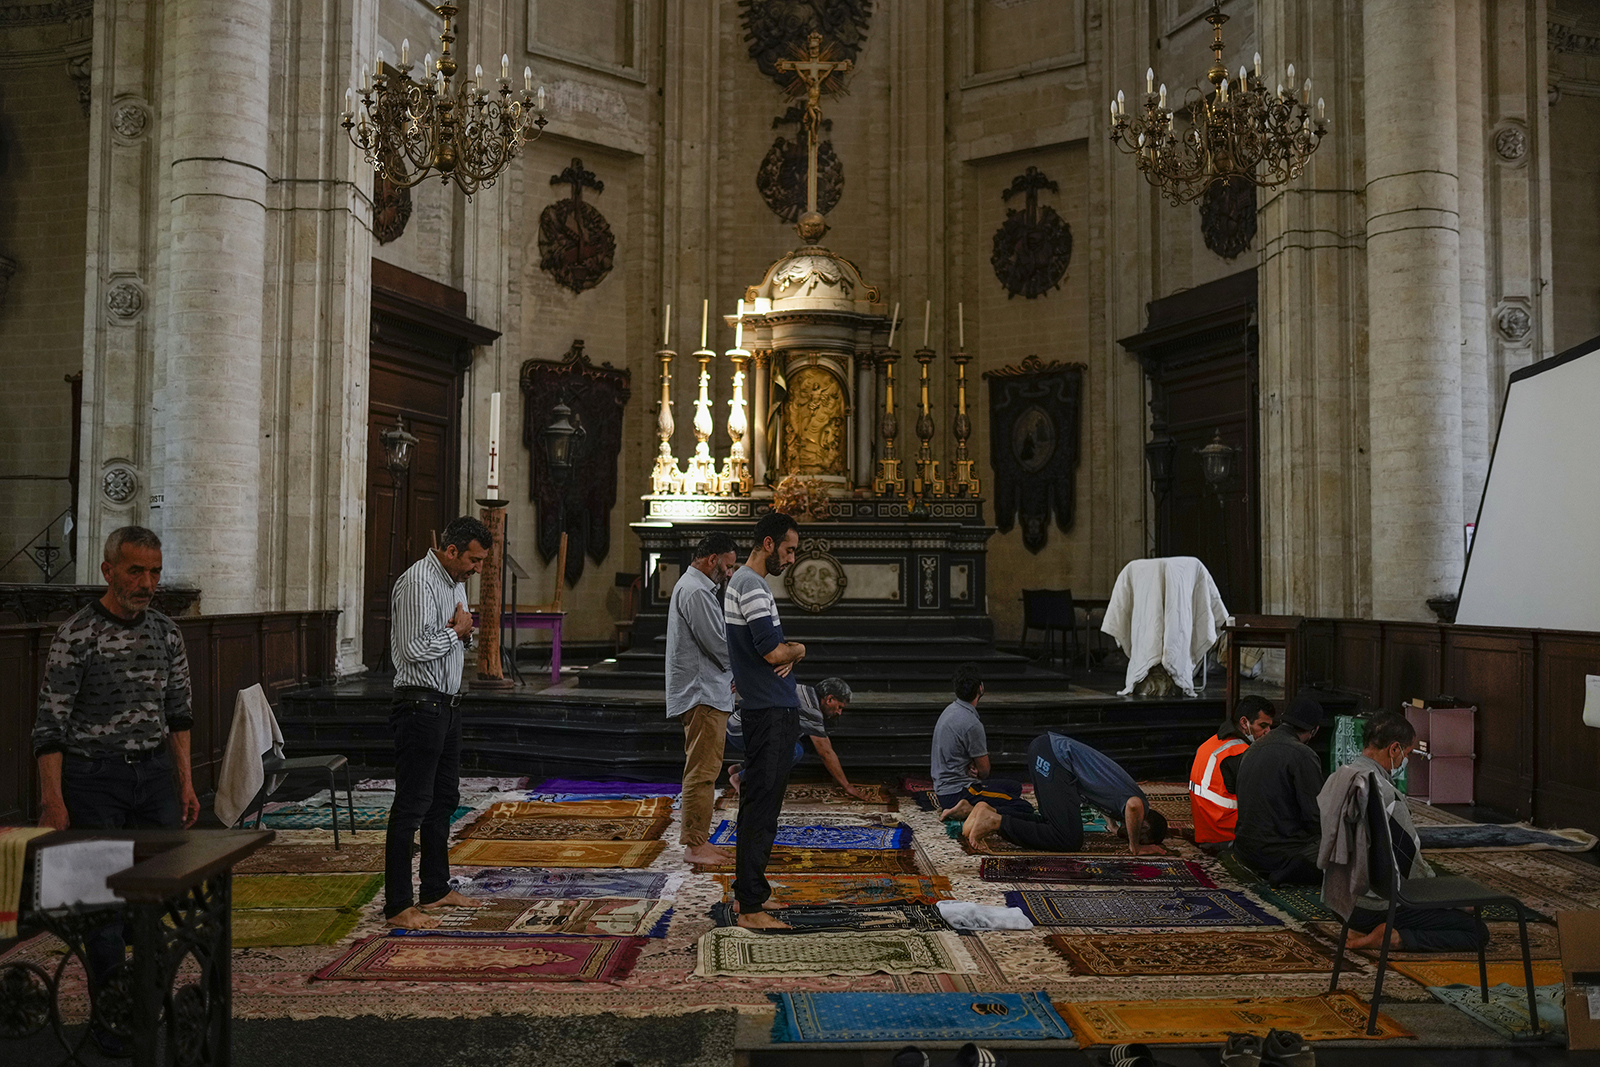 Muslim worshippers on hunger strike pray as they occupy the Saint-Jean-Baptiste-au-Beguinage church in Brussels, Monday, June 7, 2021. Dozens of migrants without official papers and who have been occupying the church since last February, with permission of the priest, began a hunger strike on May 23, 2021, to draw the attention of Brussels authorities to their plight. (AP Photo/Francisco Seco)